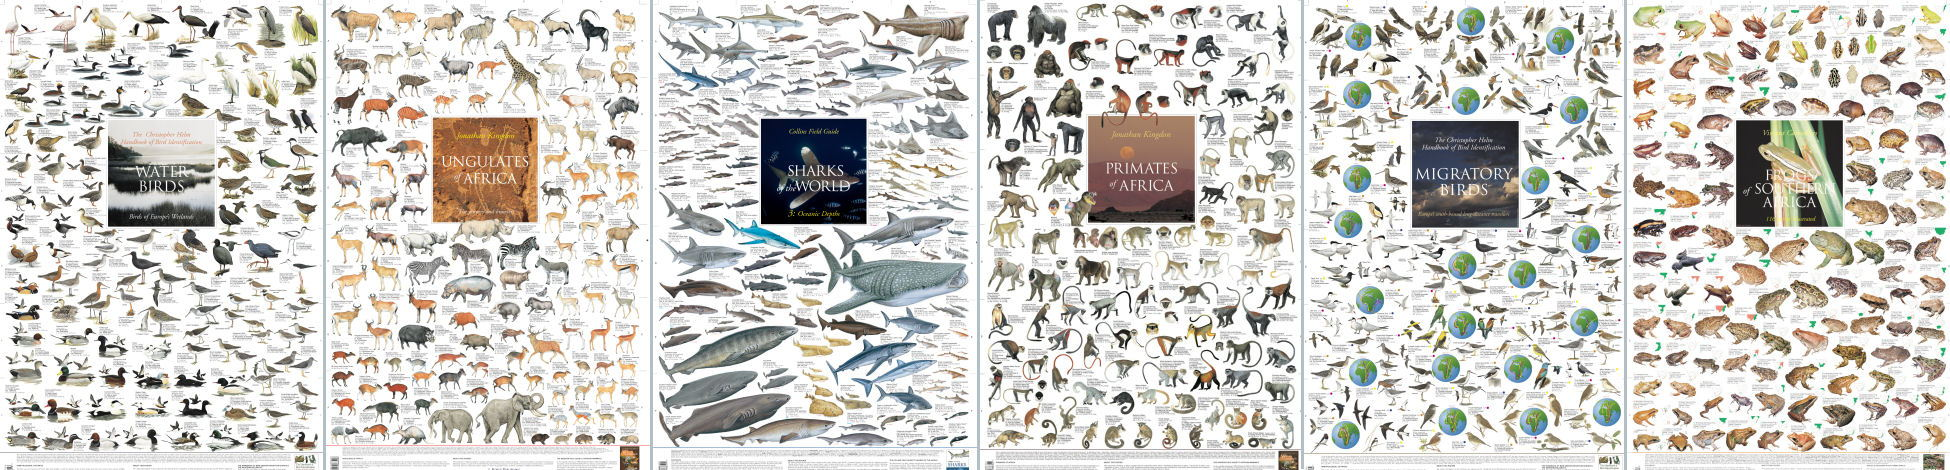 Wild Life Posters